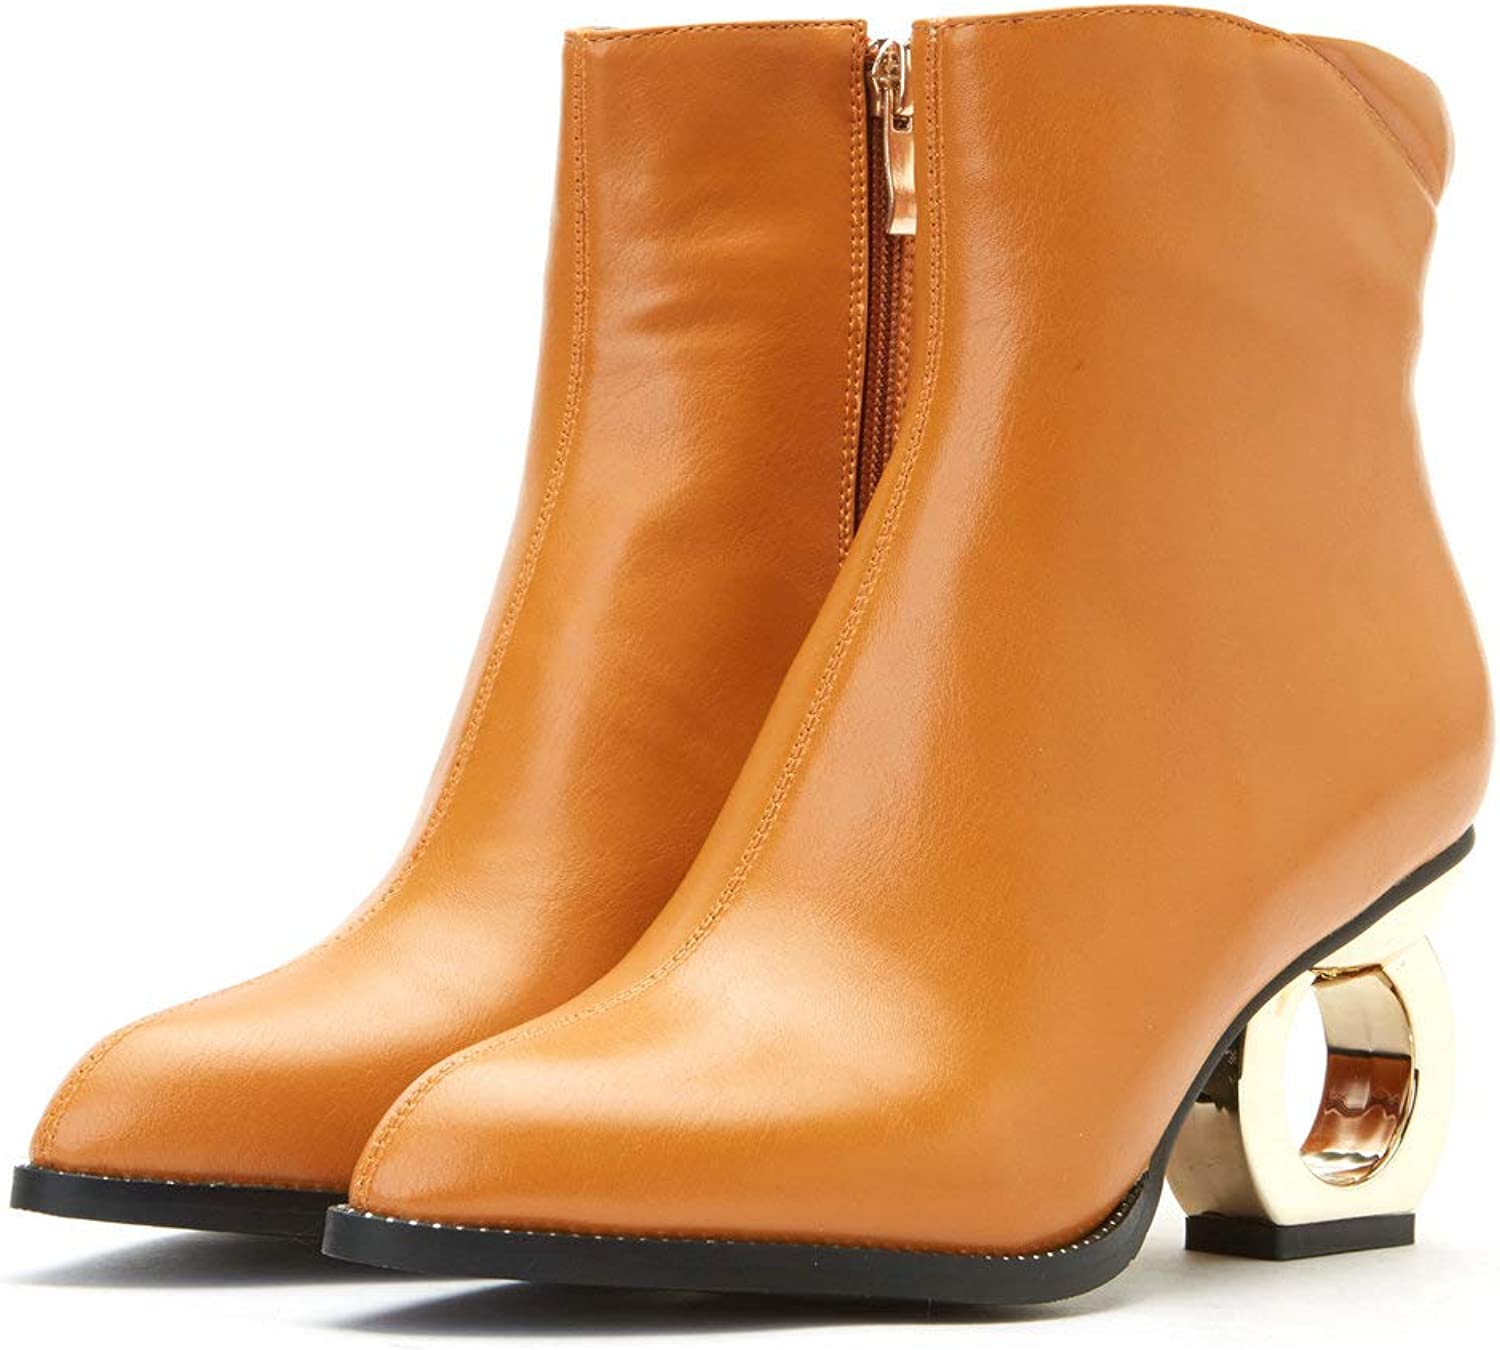 AnMengXinLing Fashion Ankle Boots Women Novel High Heel Pointed Toe Leather Western Studded Boots Side Zipper Plus Size